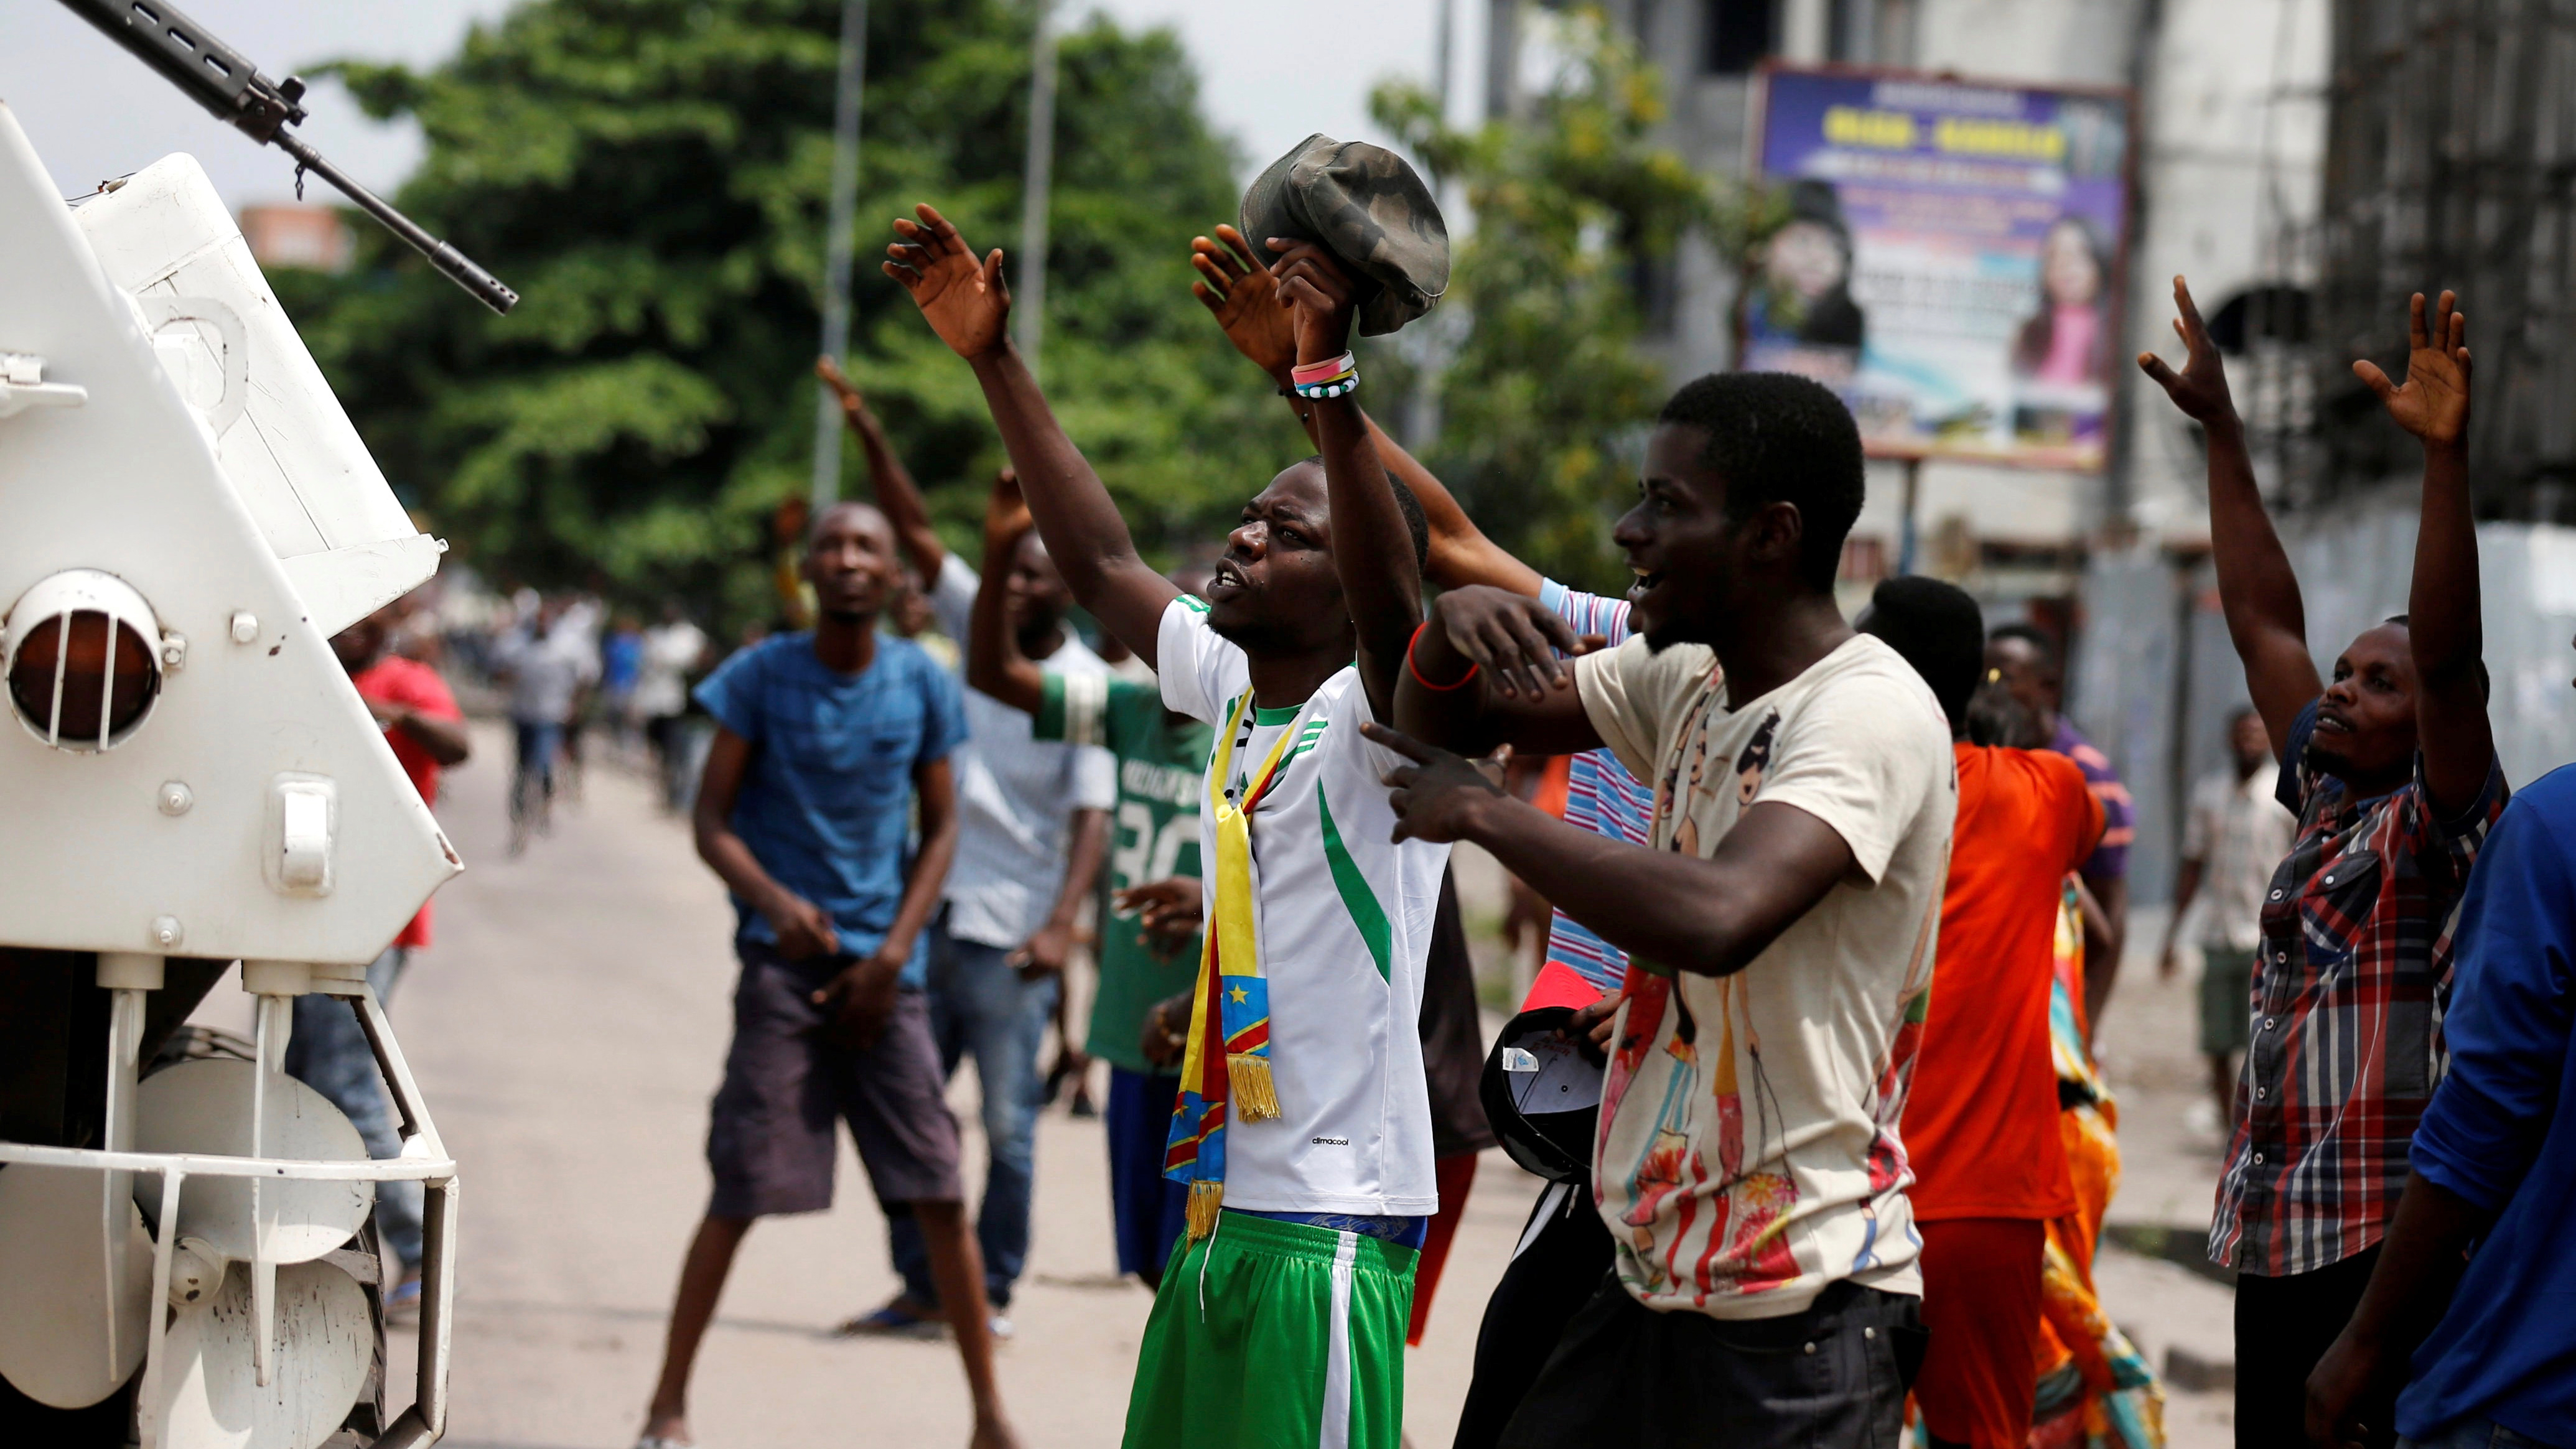 Residents chant slogans against Congolese President Joseph Kabila as peacekeepers serving in the United Nations Organization Stabilization Mission in the Democratic Republic of the Congo (MONUSCO) patrol during demonstrations in the streets of the Democratic Republic of Congo's capital Kinshasa, December 20, 2016. REUTERS/Thomas Mukoya - RTX2VU2H